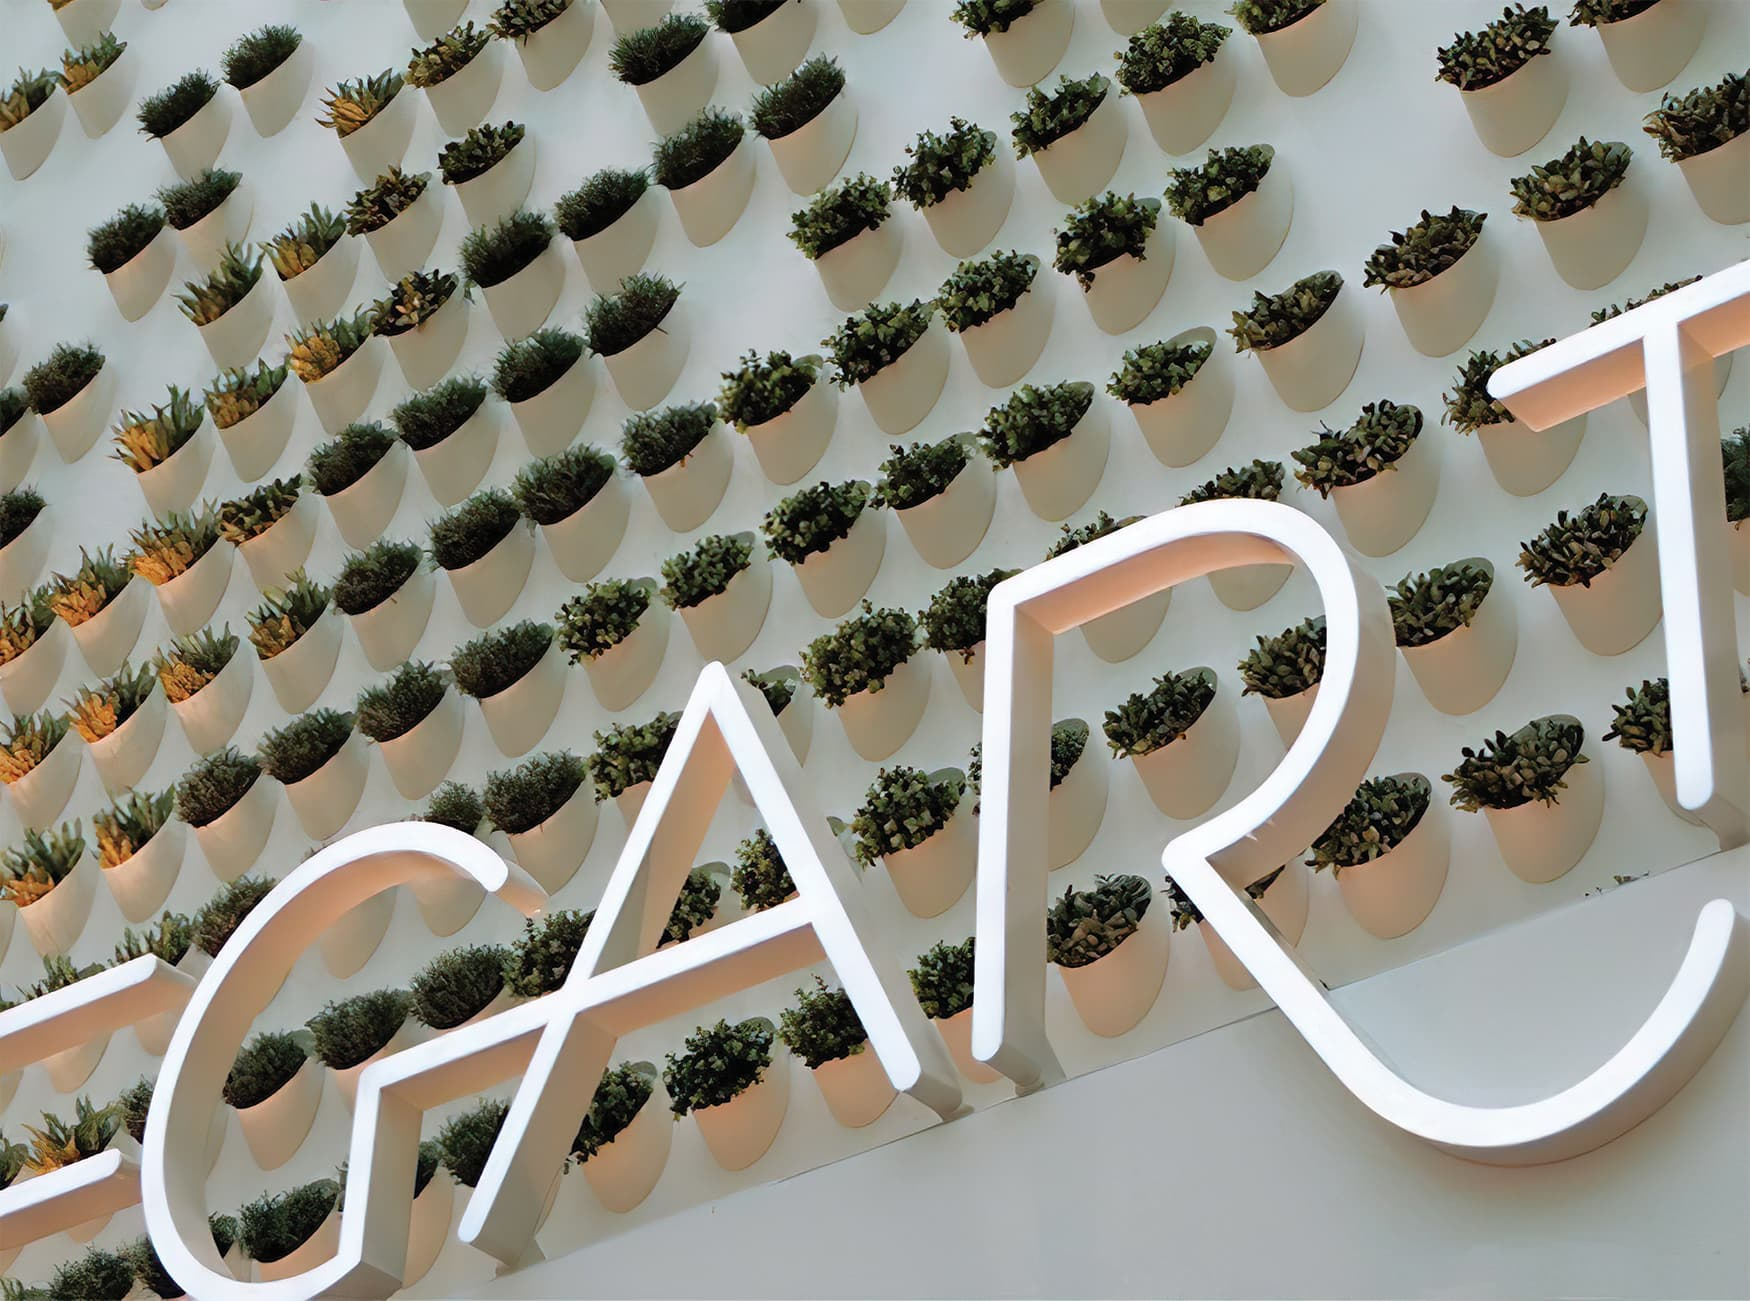 Hofgarten, a retail project in Solingen Germany, living wall integrated with project identity signage.